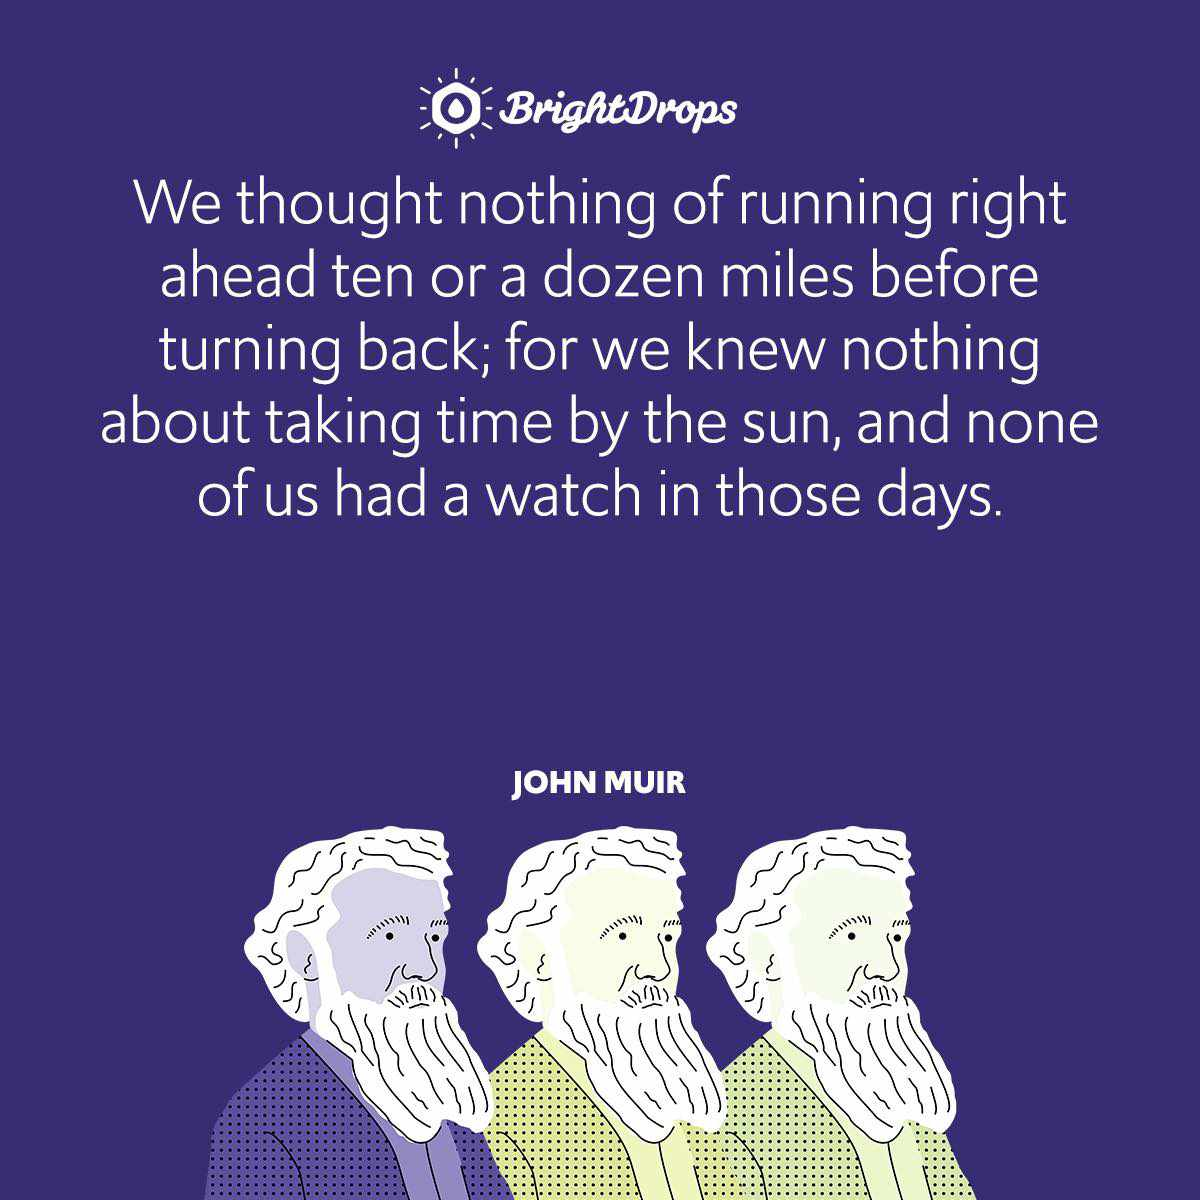 We thought nothing of running right ahead ten or a dozen miles before turning back; for we knew nothing about taking time by the sun, and none of us had a watch in those days.